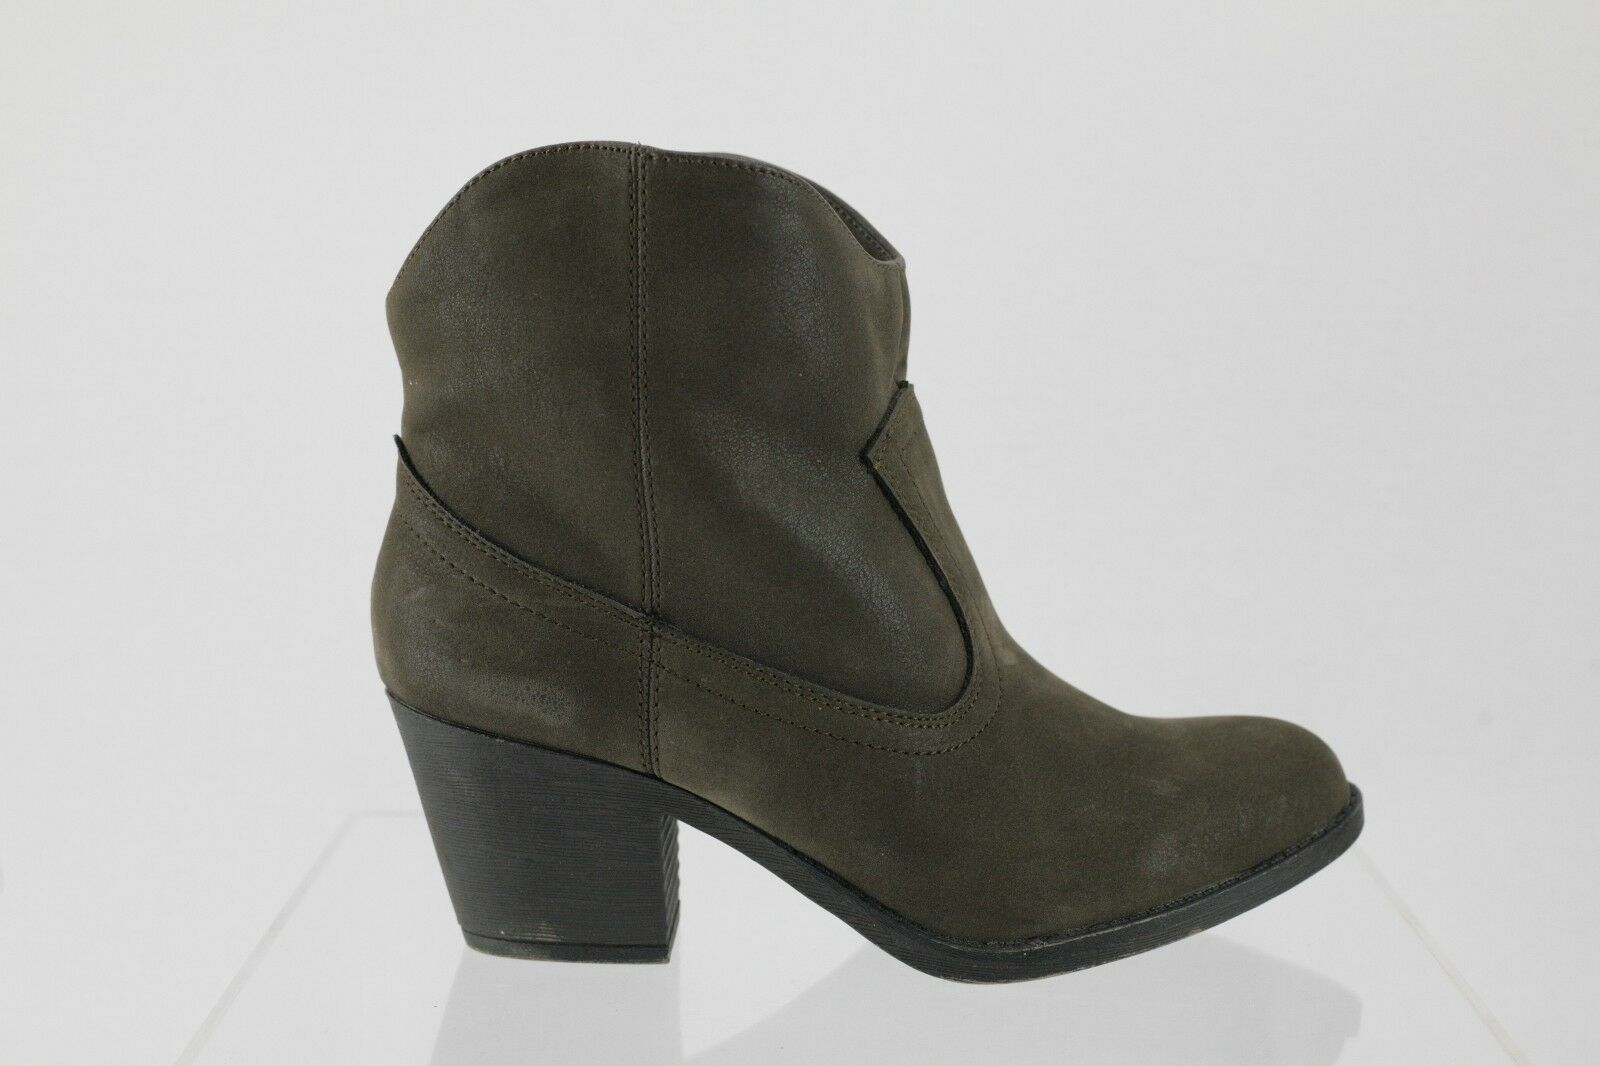 Women's Rocket Ankle Dog Soundoff Brown Pull-on Ankle Rocket Boots Size 8.5 M 9df345